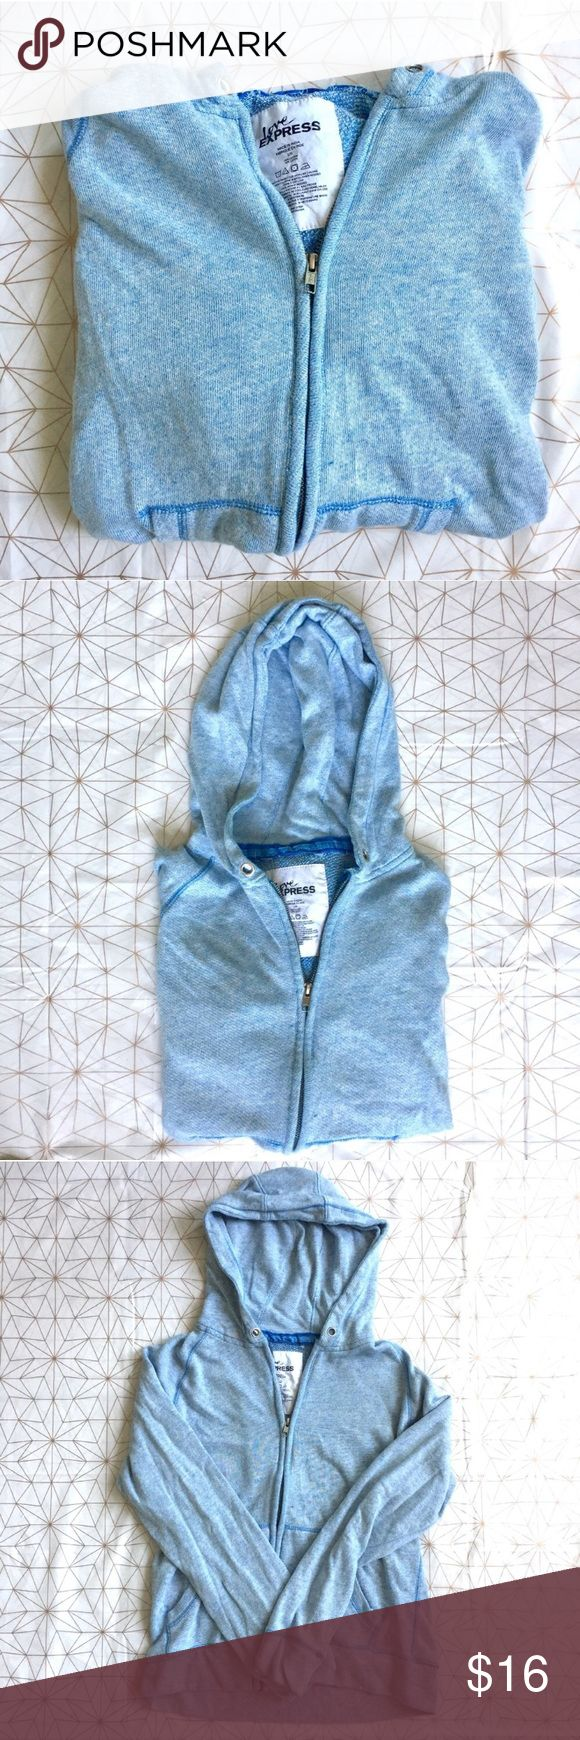 """Express blue zip up hooded sweater - Size: L - Material: 100% cotton - Condition: good - Color: light blue - Pockets: yes, on the front  - Closure: zipper - Style: hooded sweatshirt with zipper and pockets - Extra notes:   *Measurements:  Bust: 19"""" flat Length: 22.5"""" Express Sweaters"""